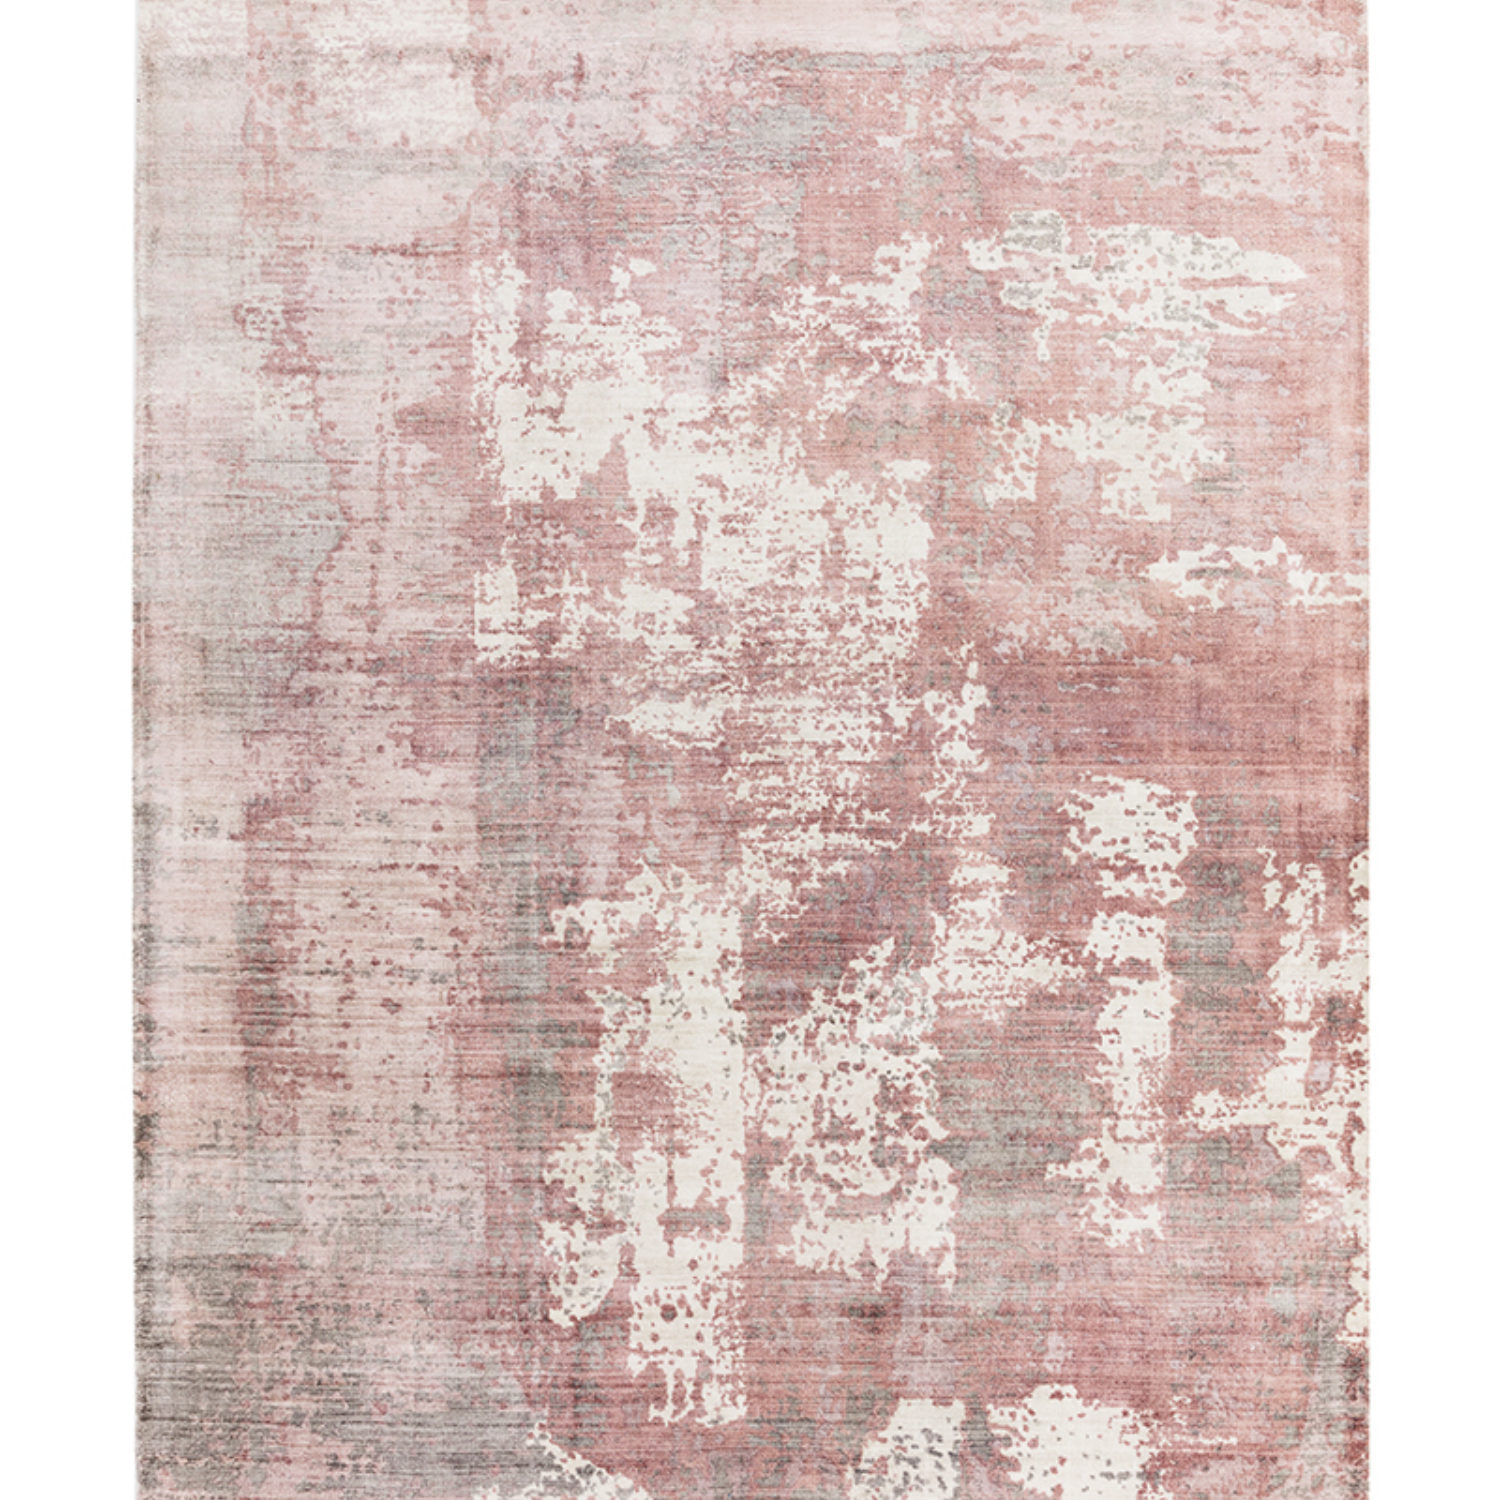 Tip sheared viscose rug with a screen printed abstract design